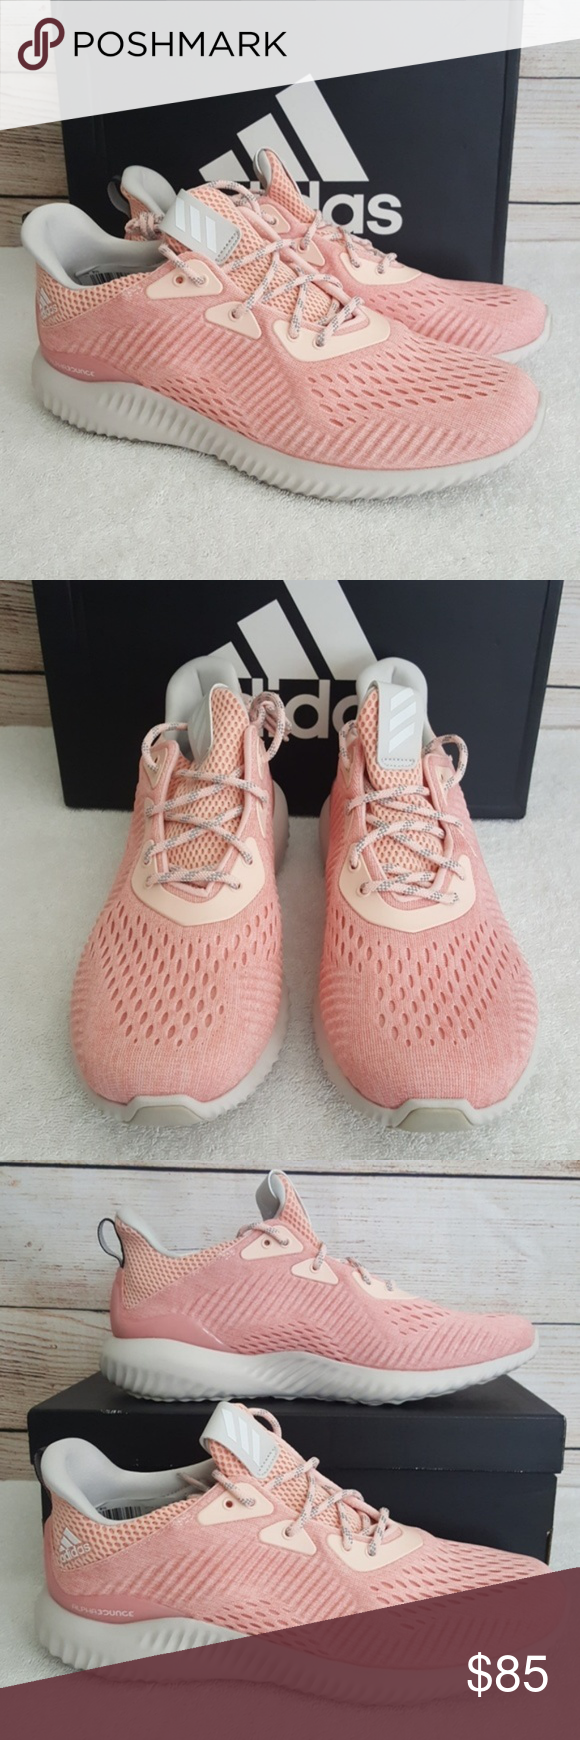 bc7e9233daa26 New adidas Alphabounce EM Sneakers New... never worn BW1195 Forged mesh  upper